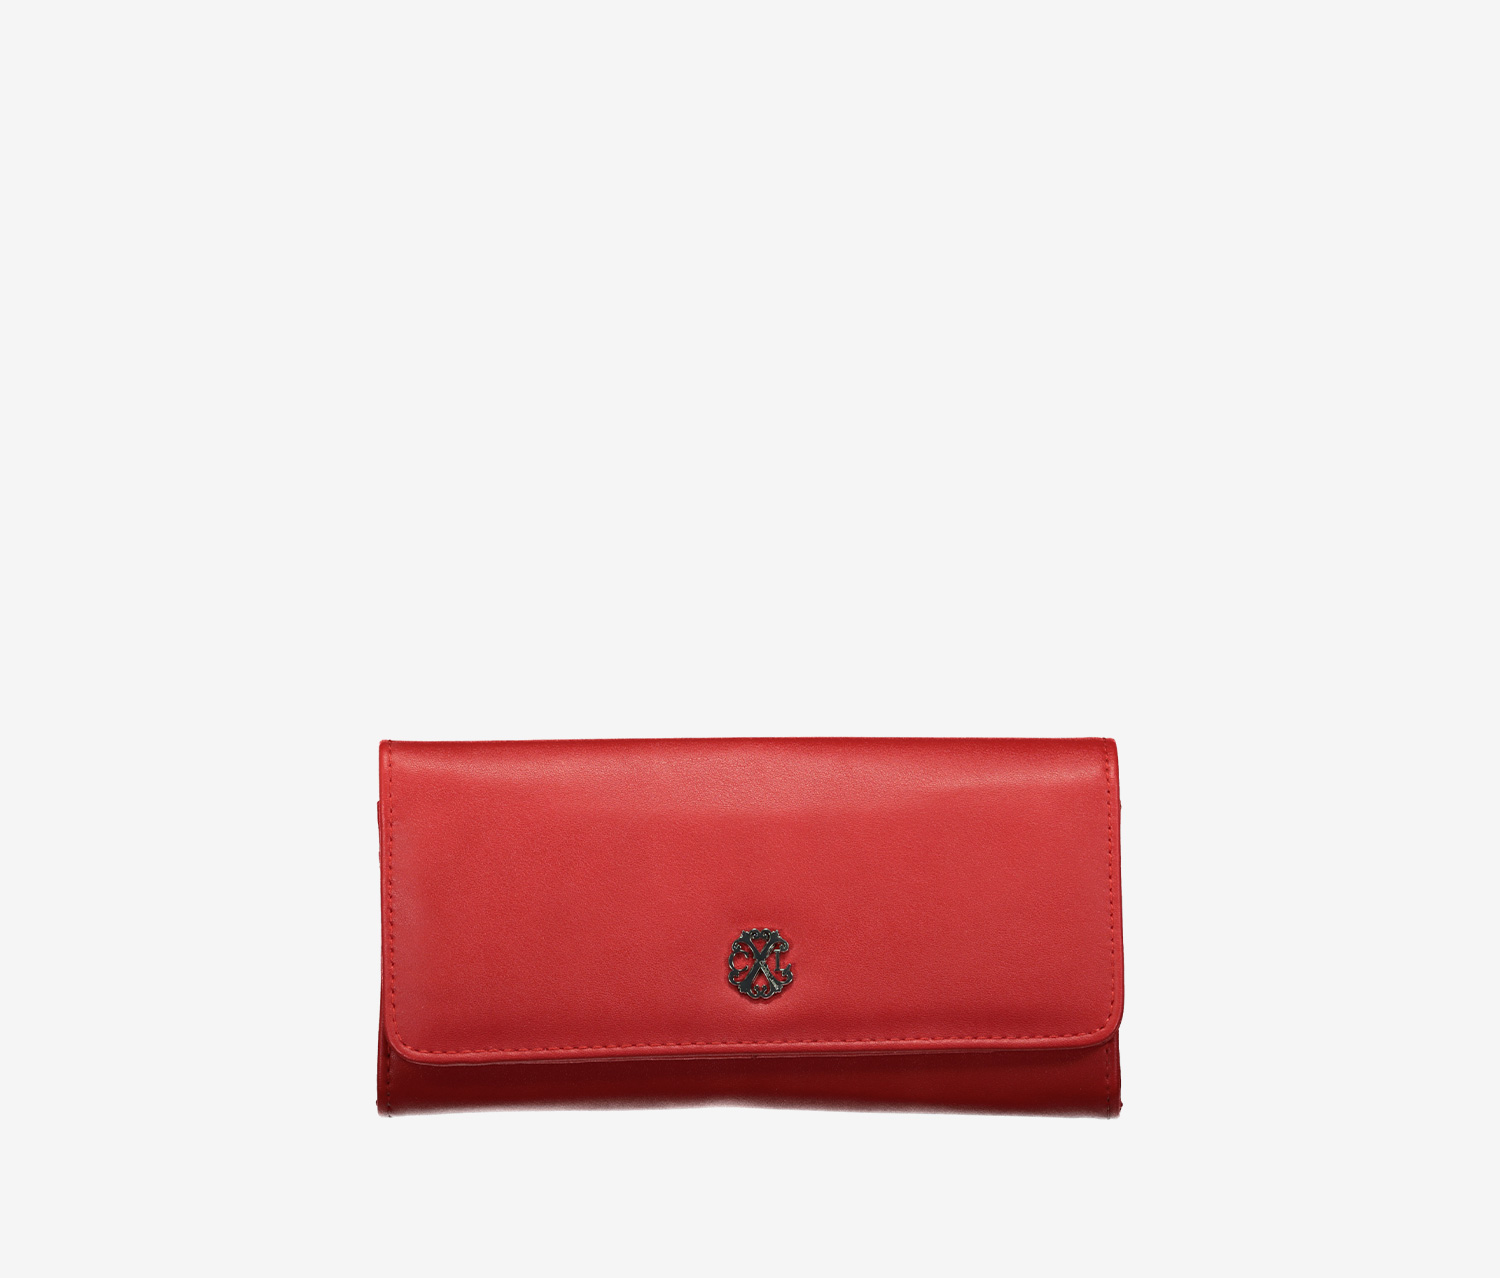 CXL by Christian Lacroix Rosin Flap Wallet, Red/Rouge